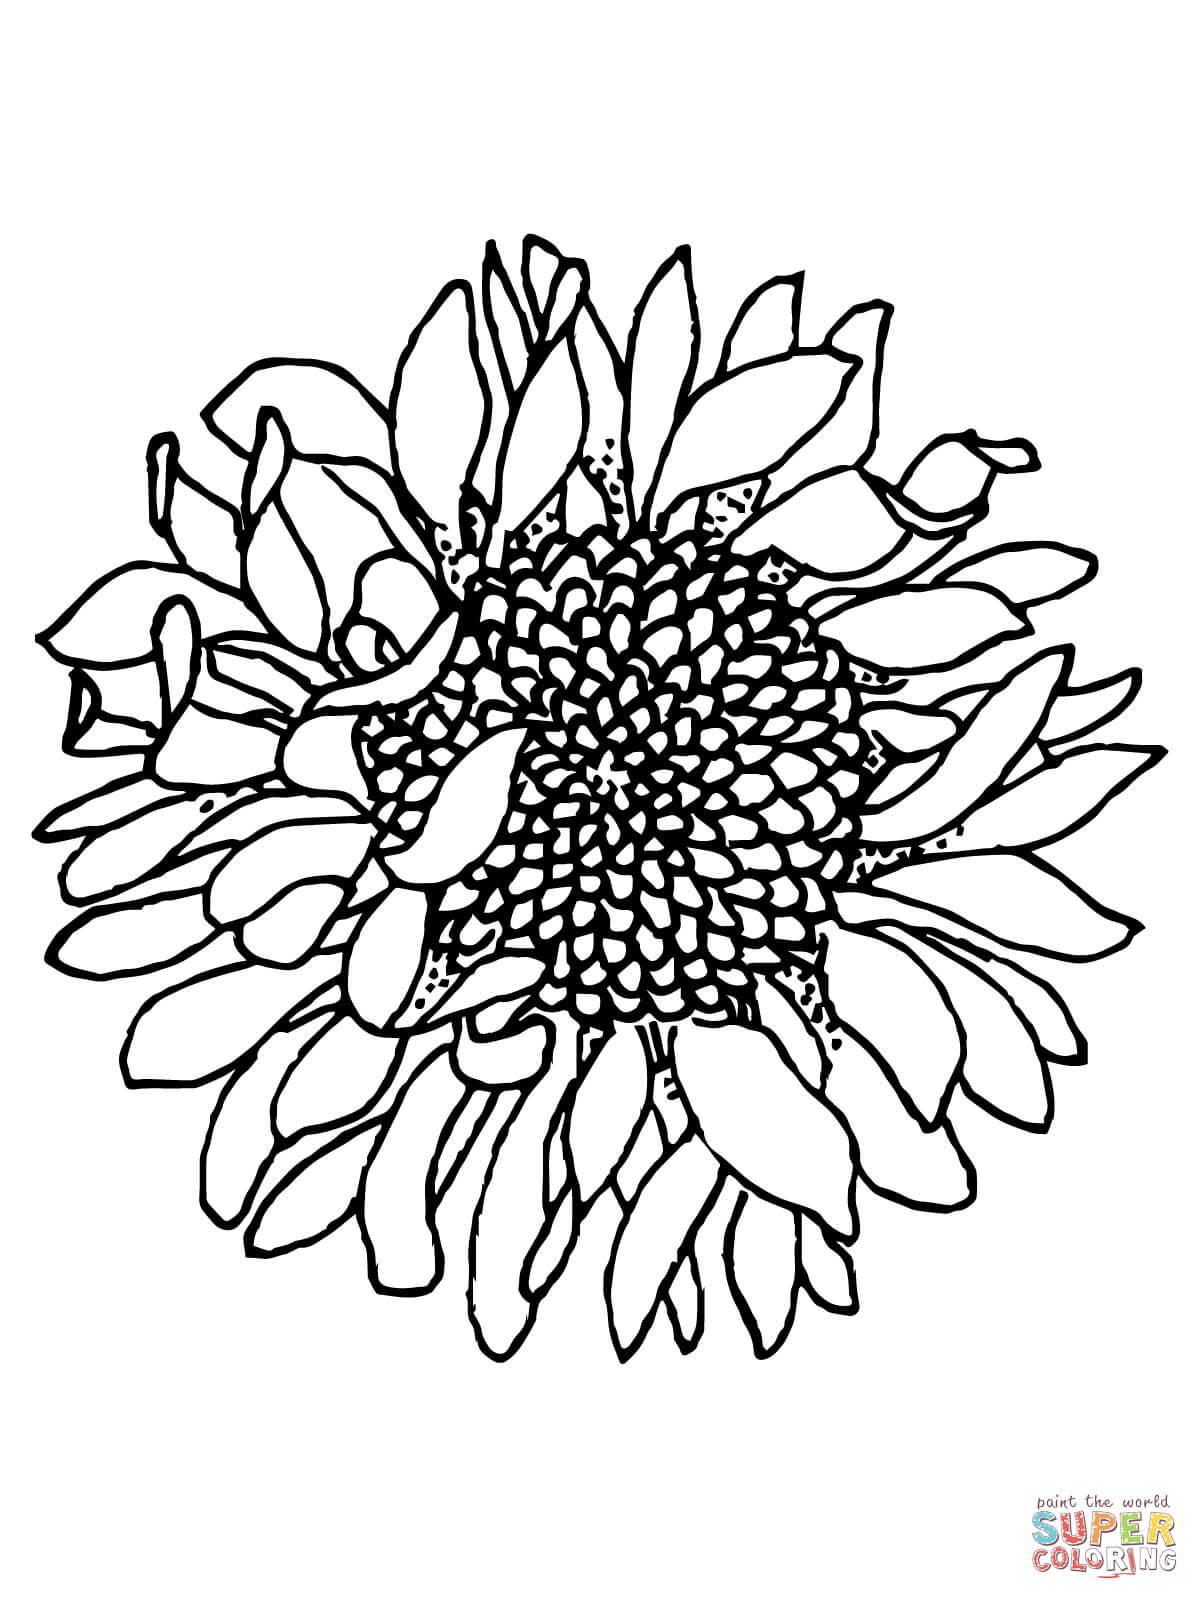 coloring sunflower picture free photo sunflower silhouettes beautiful cool sunflower coloring picture